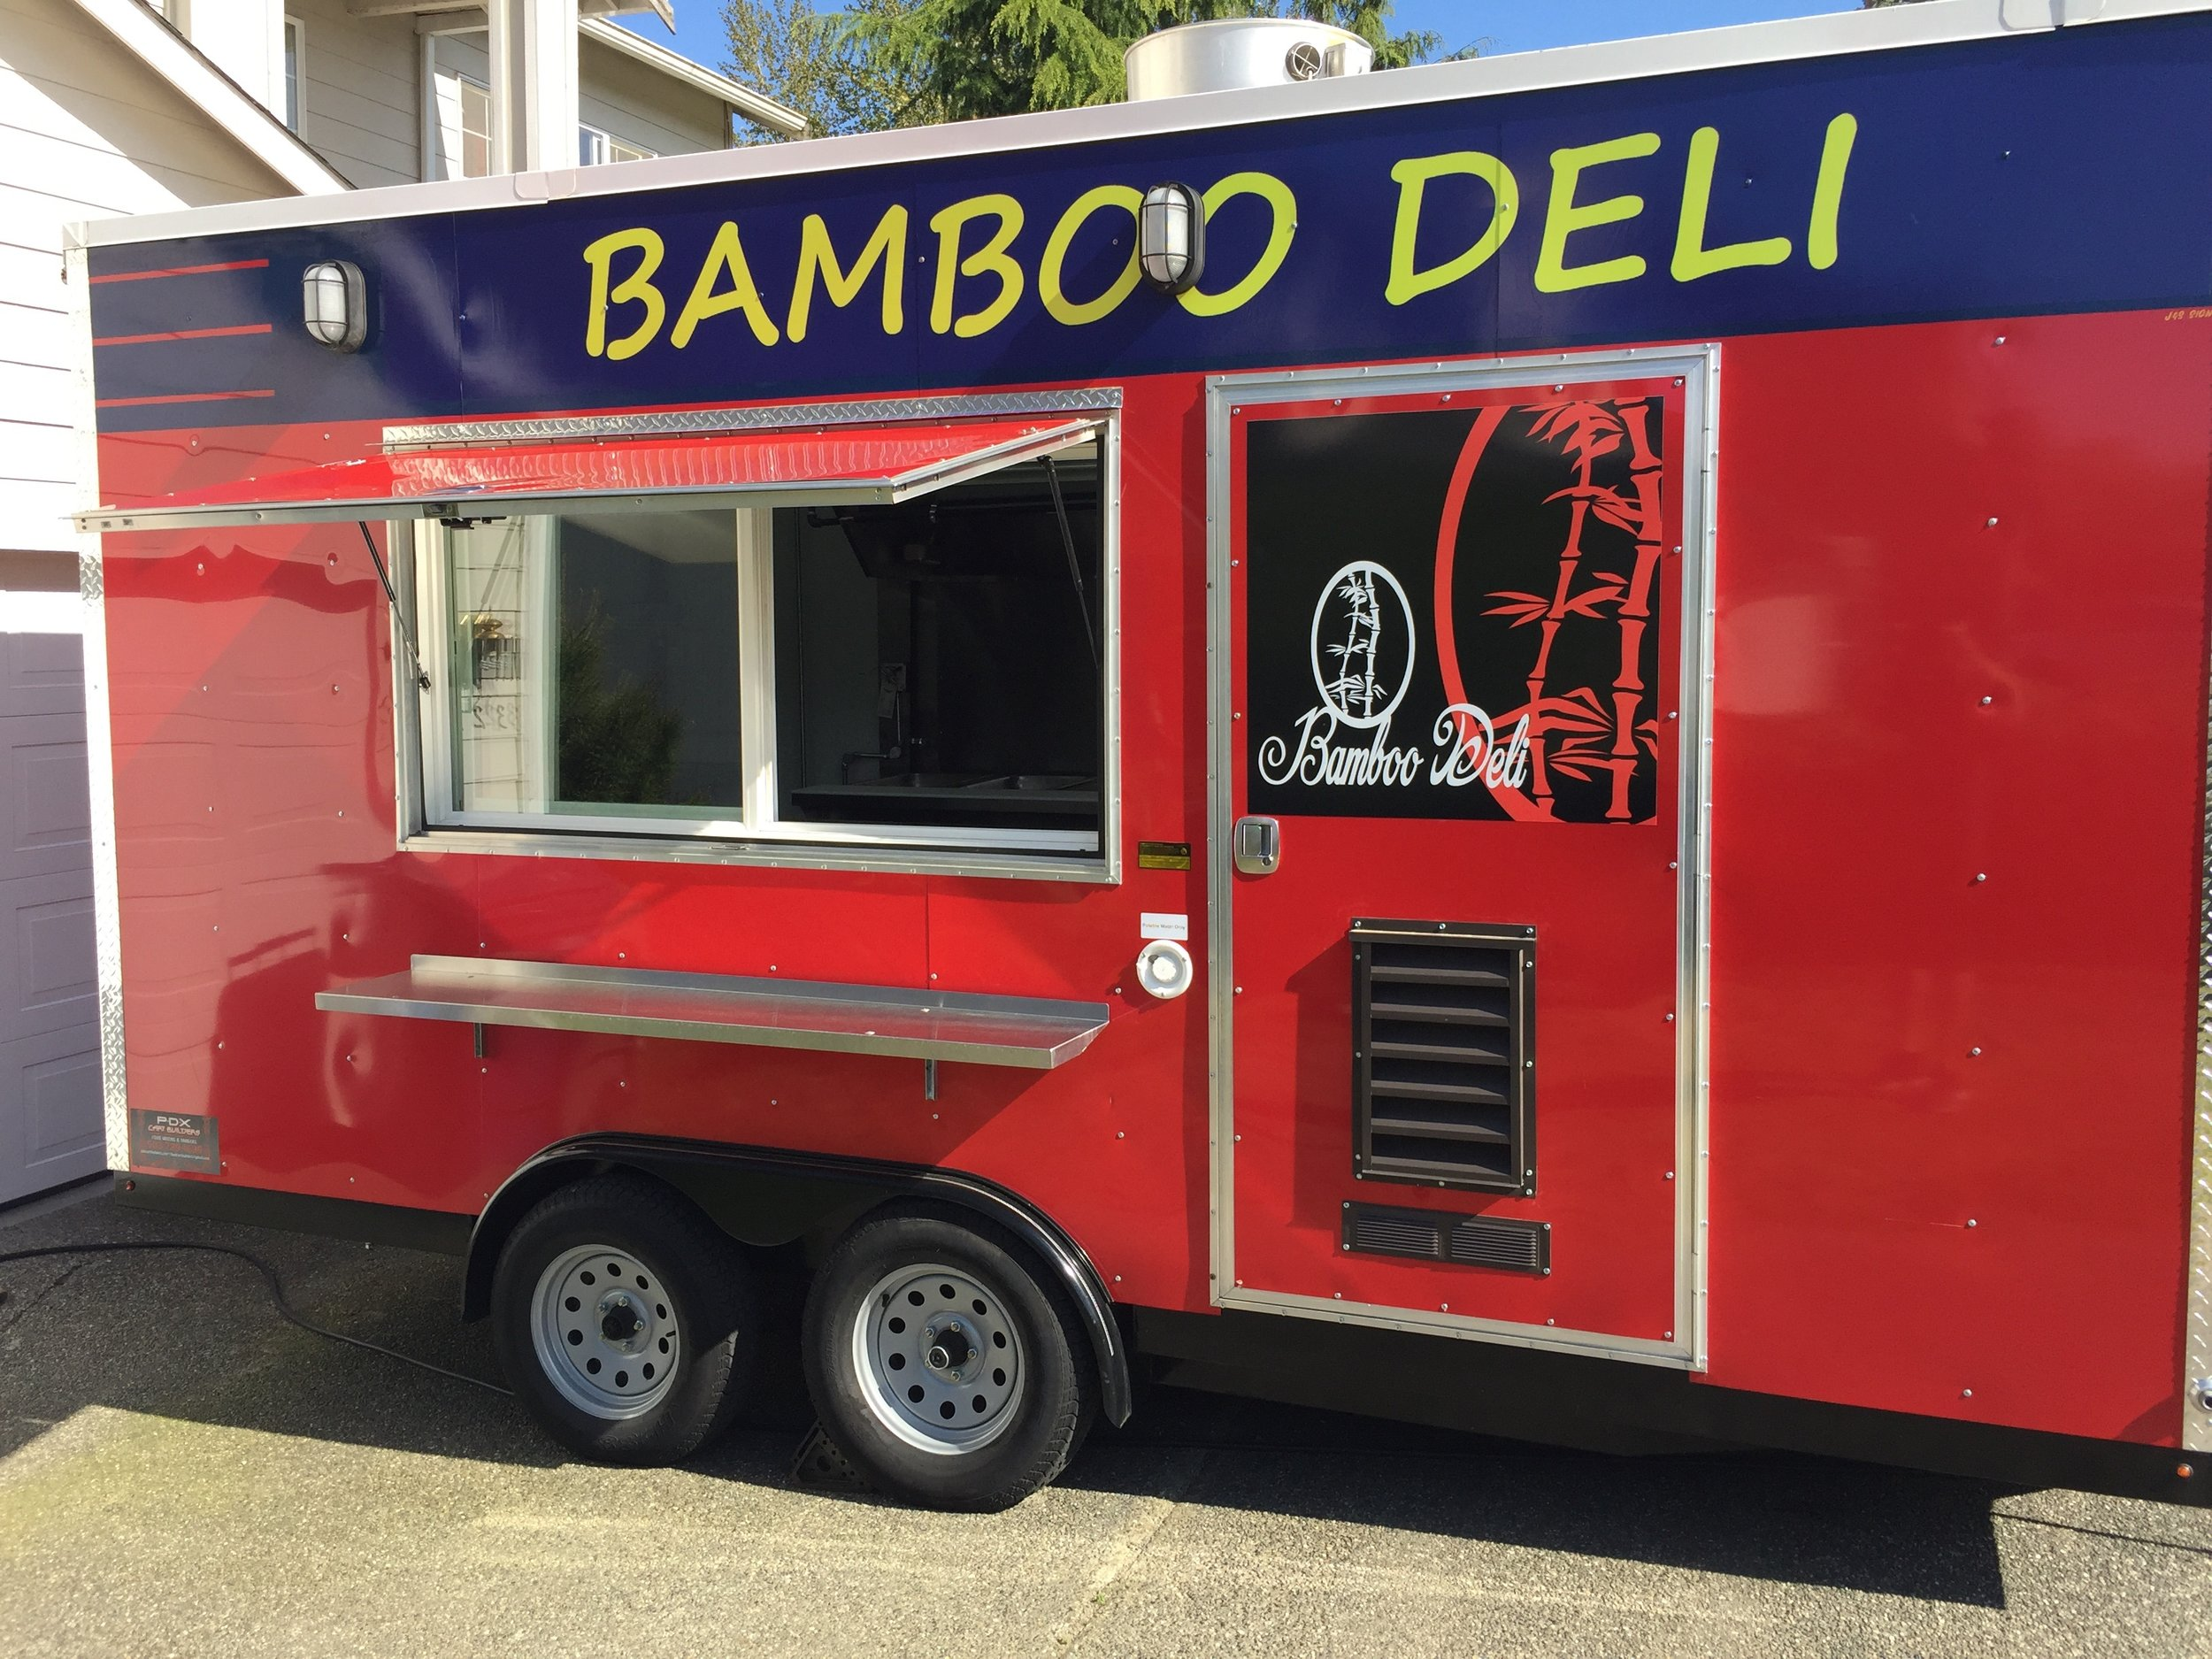 Bamboo Deli - AsianWebsite: bamboodeli.comPhone: 206-300-1757Email: bamboodeli1@gmail.comAvailable for cateringAlso serves in Everett, Marysville & Tulalip